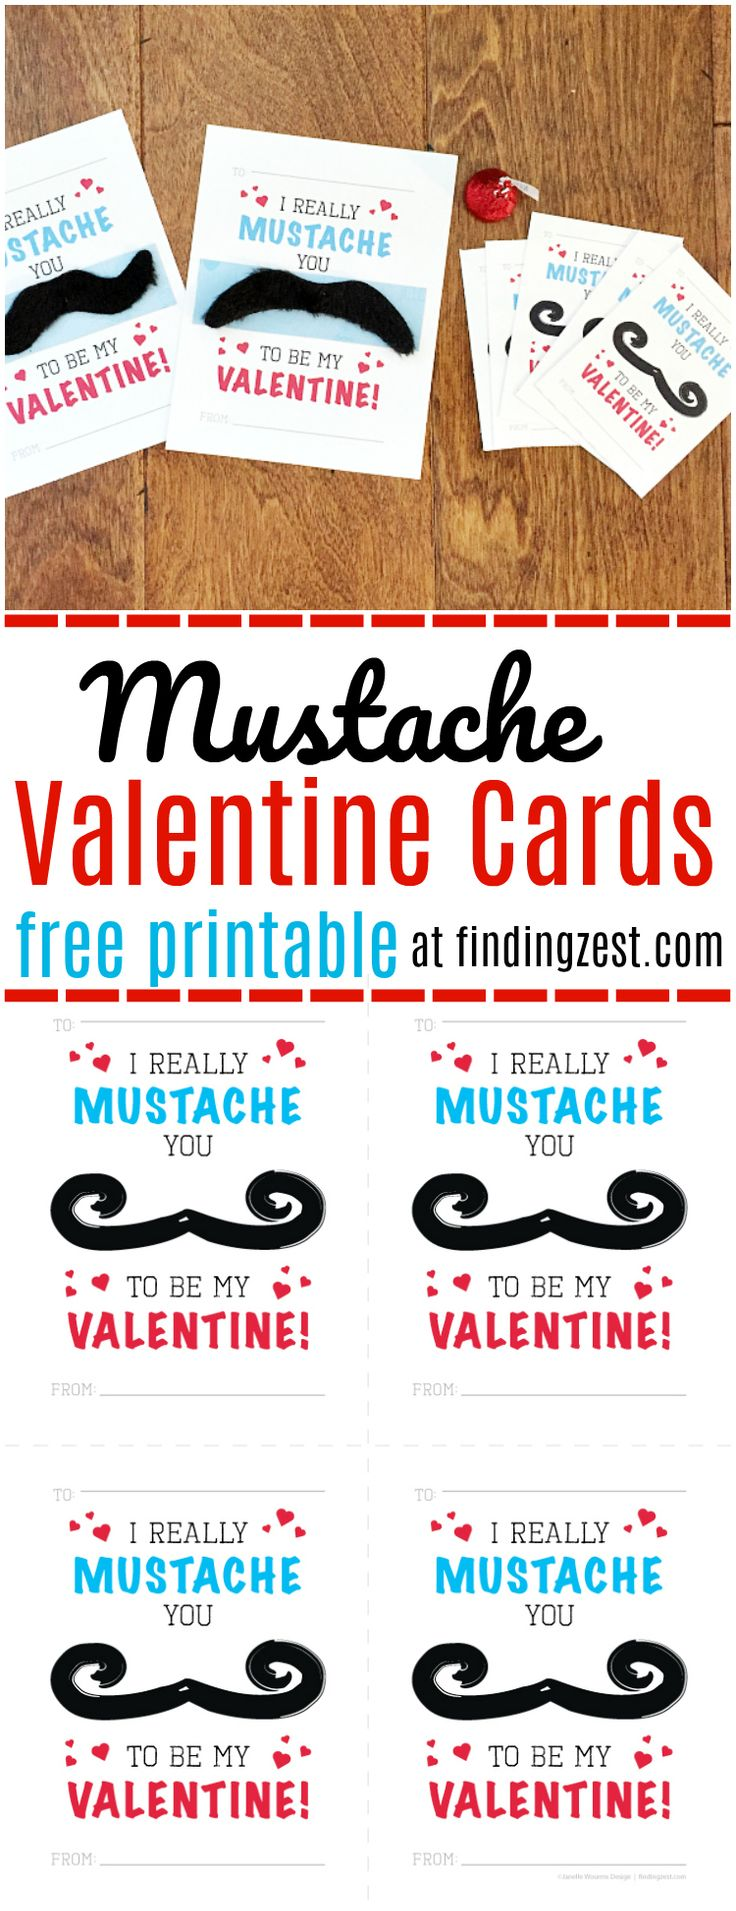 """This Mustache Valentine Cards Free Printable is the perfect classroom valentine for your child this year. With two sizes available, this """"I Really Mustache You to Be My Valentine"""" card printable includes optional instructions for adding fake mustaches to your valentines. Kids will love these mustache valentines!"""